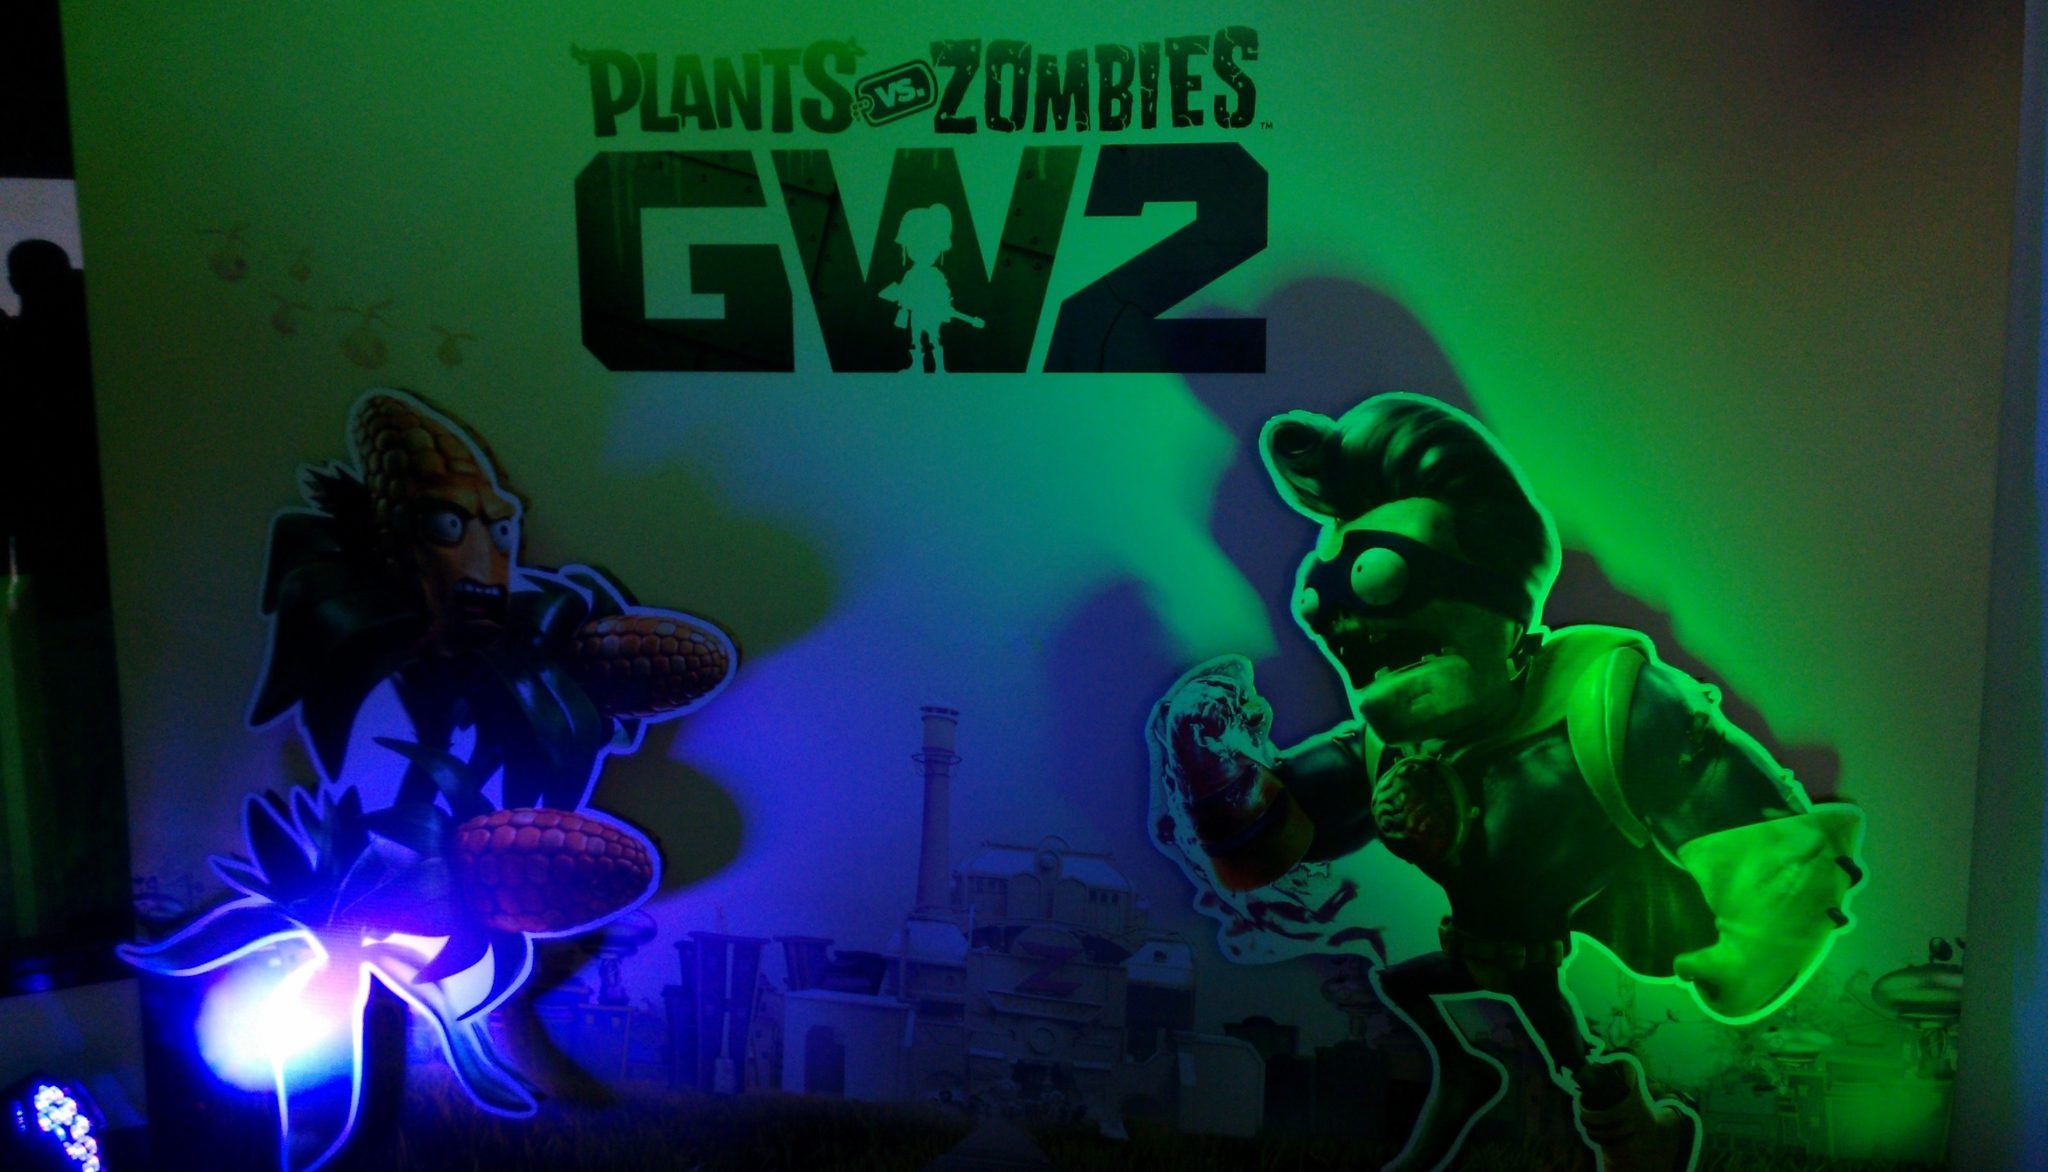 Ea Present Plants Vs Zombies Garden Warfare 2 En Colombia Gamerfocus